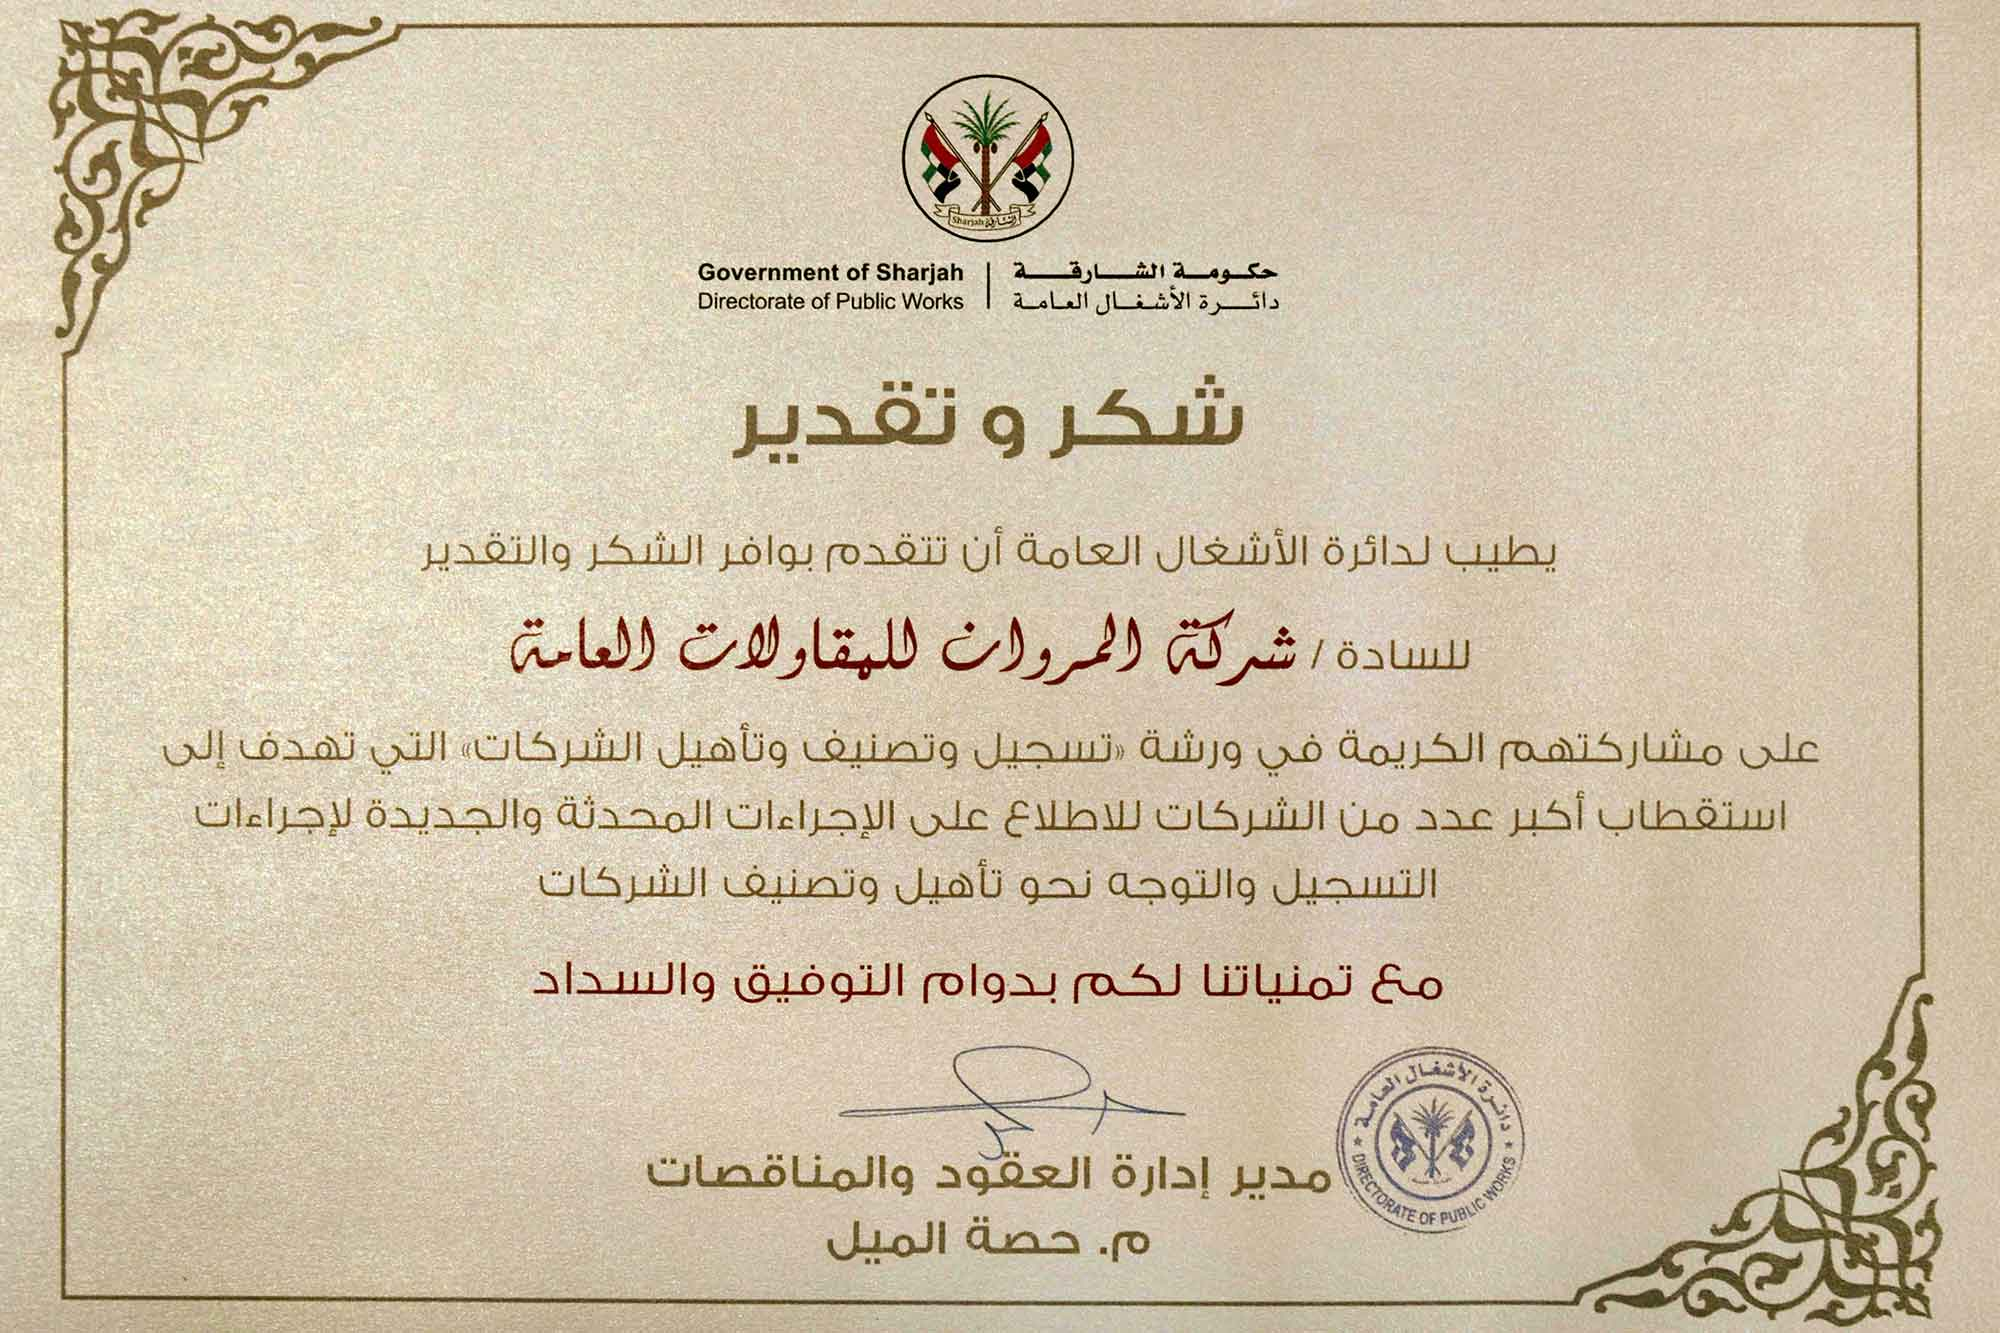 Certificate of Thanks and Appreciation from Sharjah Directorate of Public Works